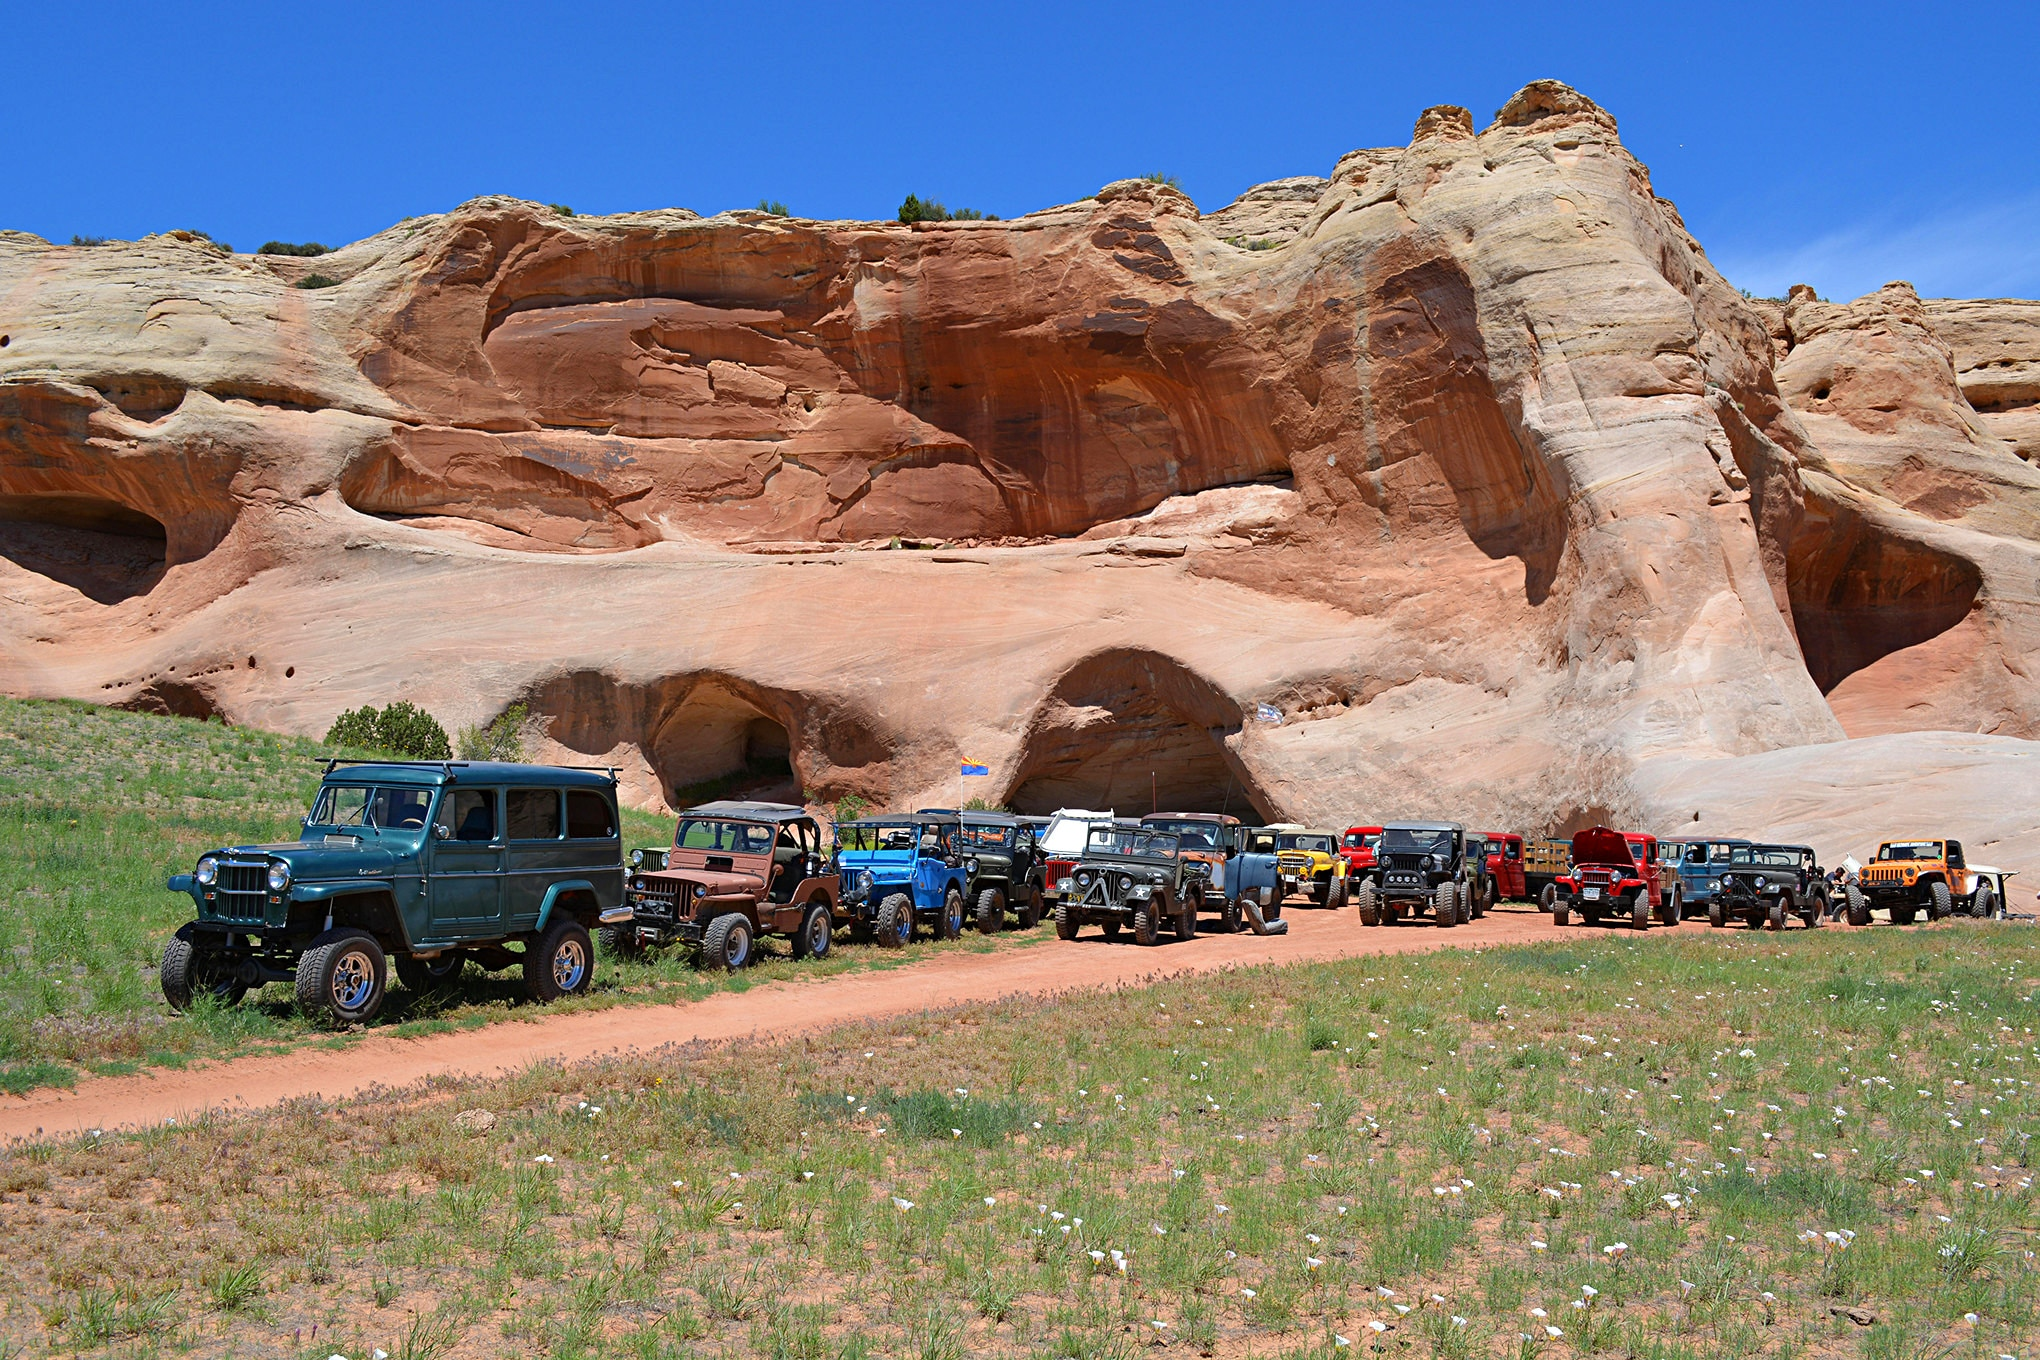 The group stopped for lunch at Cave Springs along the Dome Plateau trail. Red Cliffs Lodge provides a wonderful sack lunch, and the weather was perfect for the Saturday trail run.